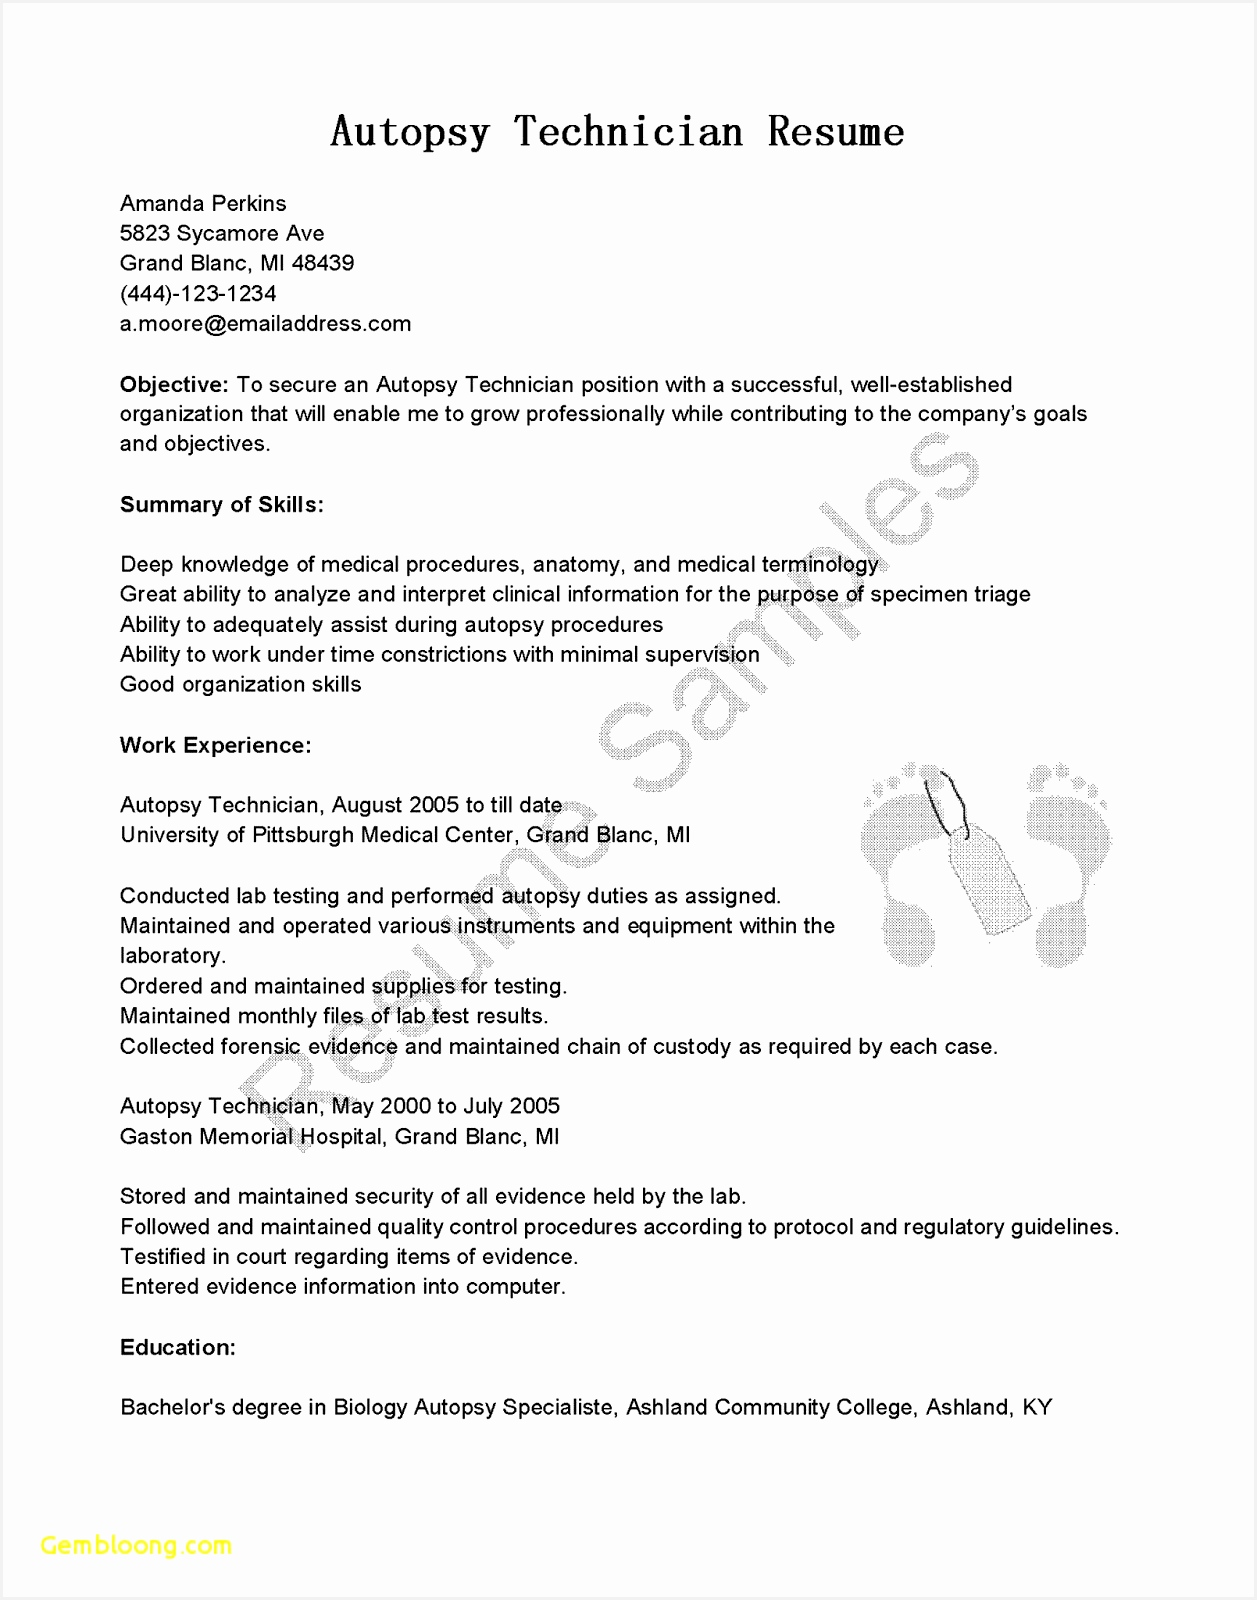 Business Letterhead Word Template Valid Resume In Microsoft Word New Executive Resume Templates Word Od16001257